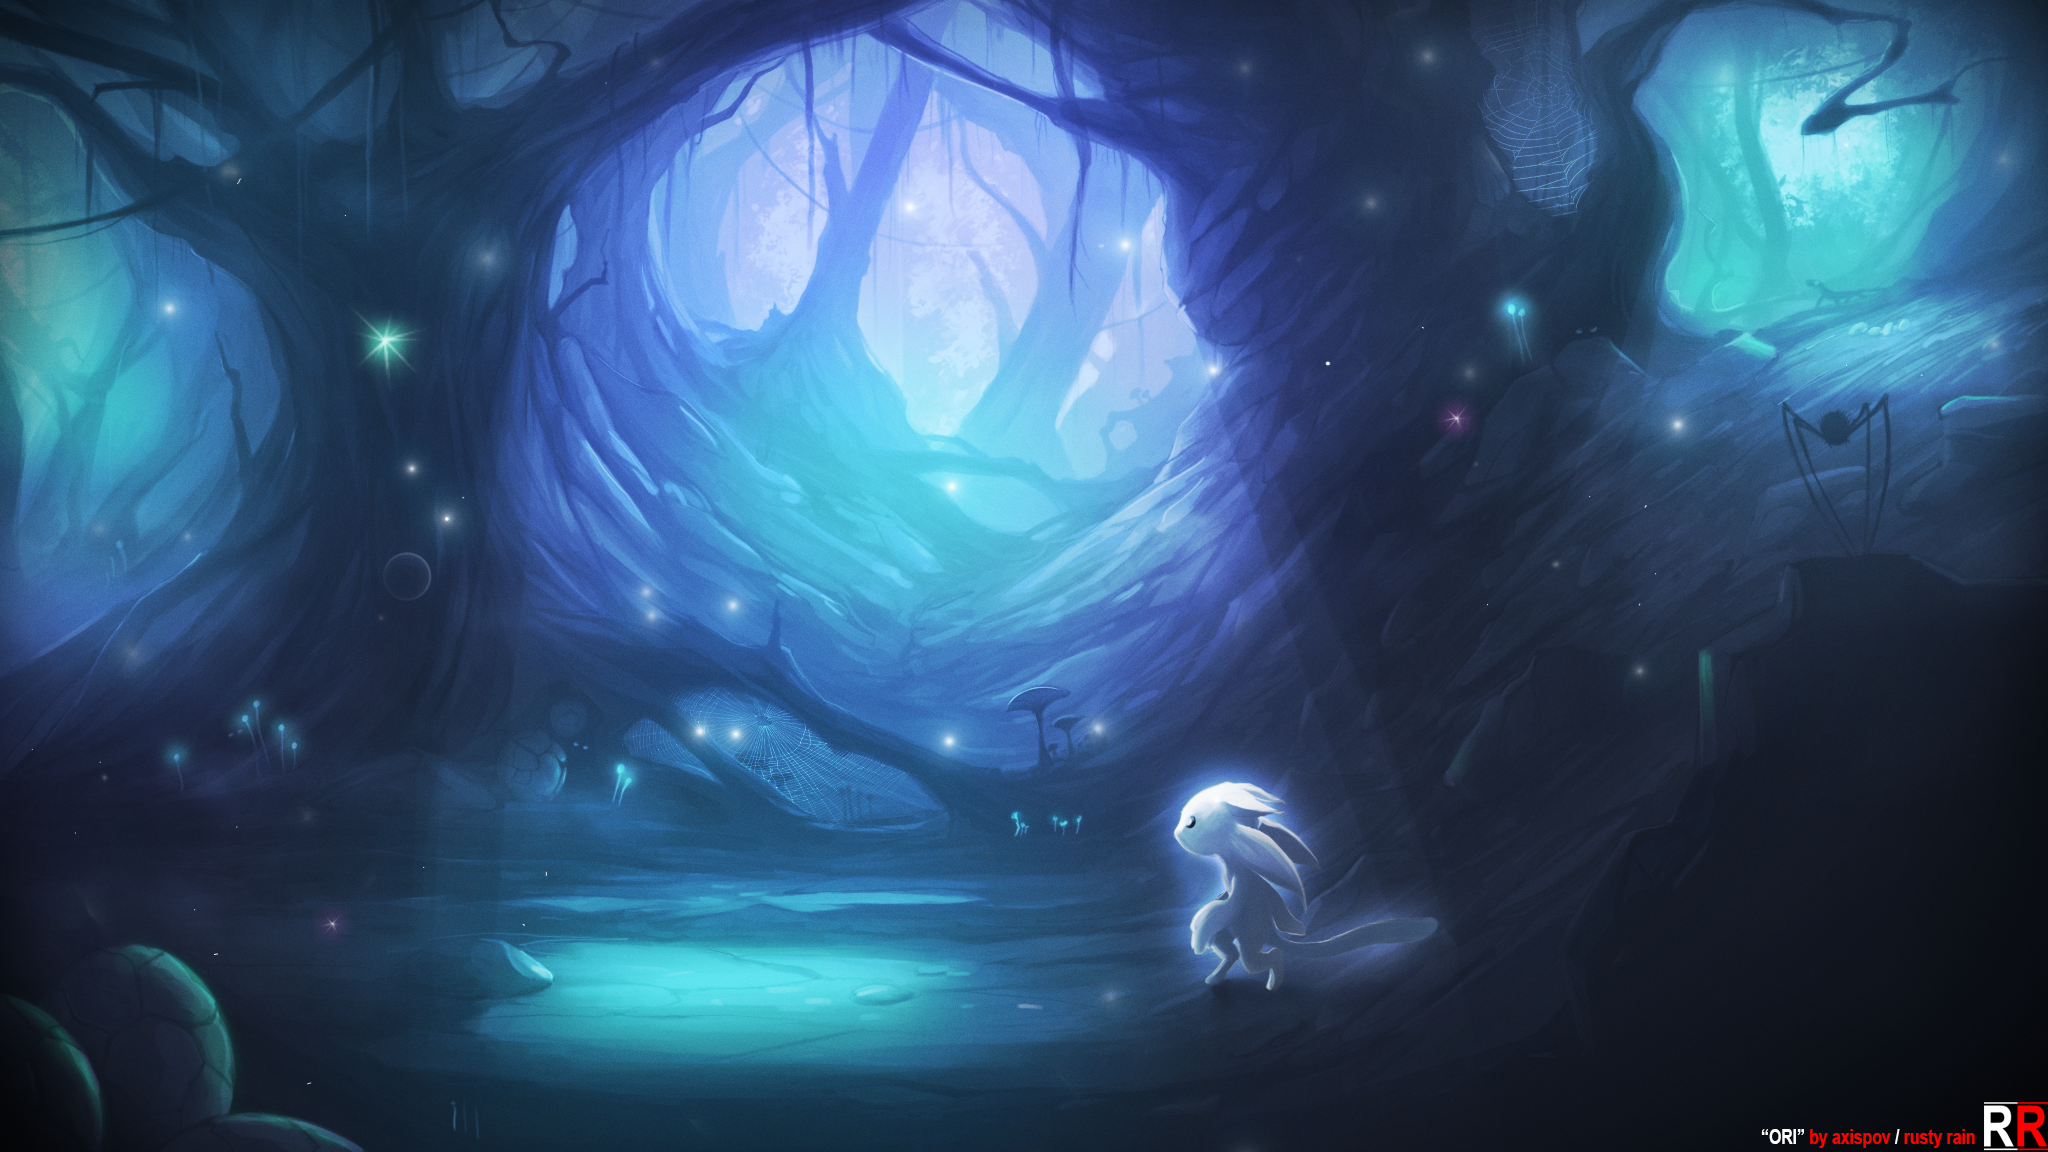 ori and the blind forest_fanart by AxisPOV on DeviantArt